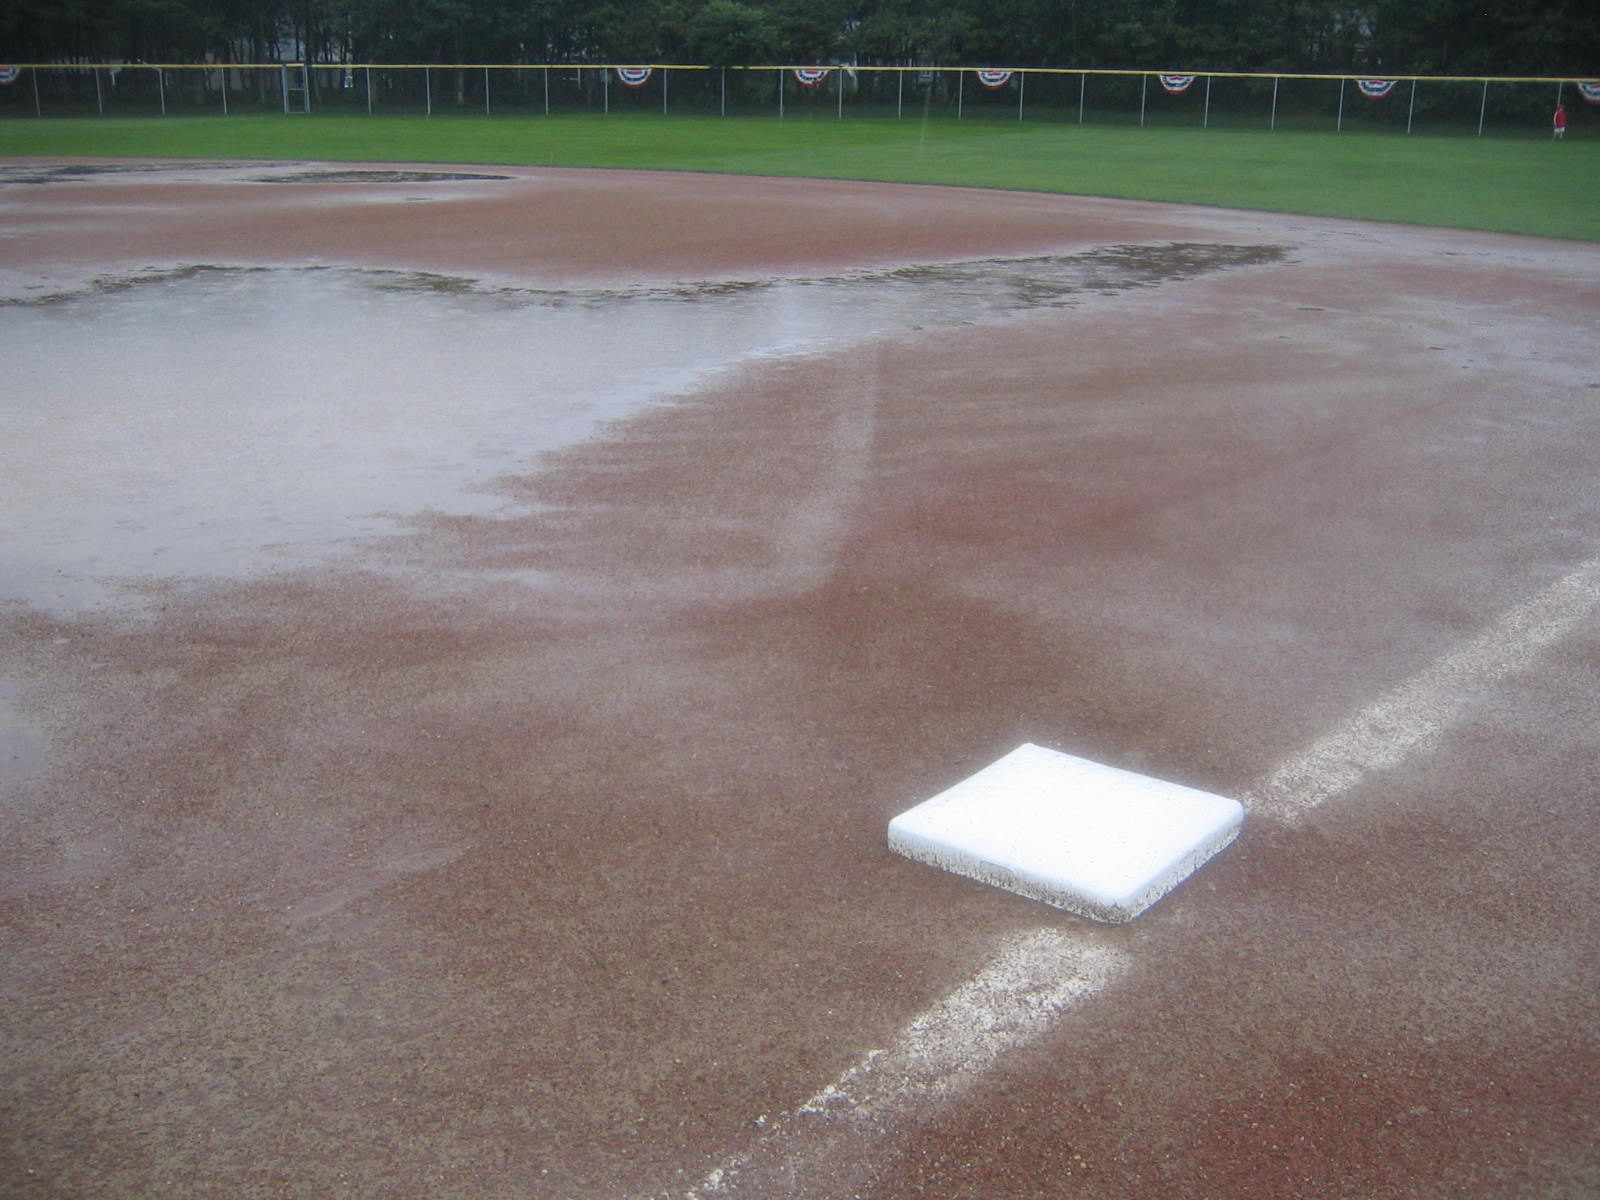 The economy has led to a soggy outlook in sports.